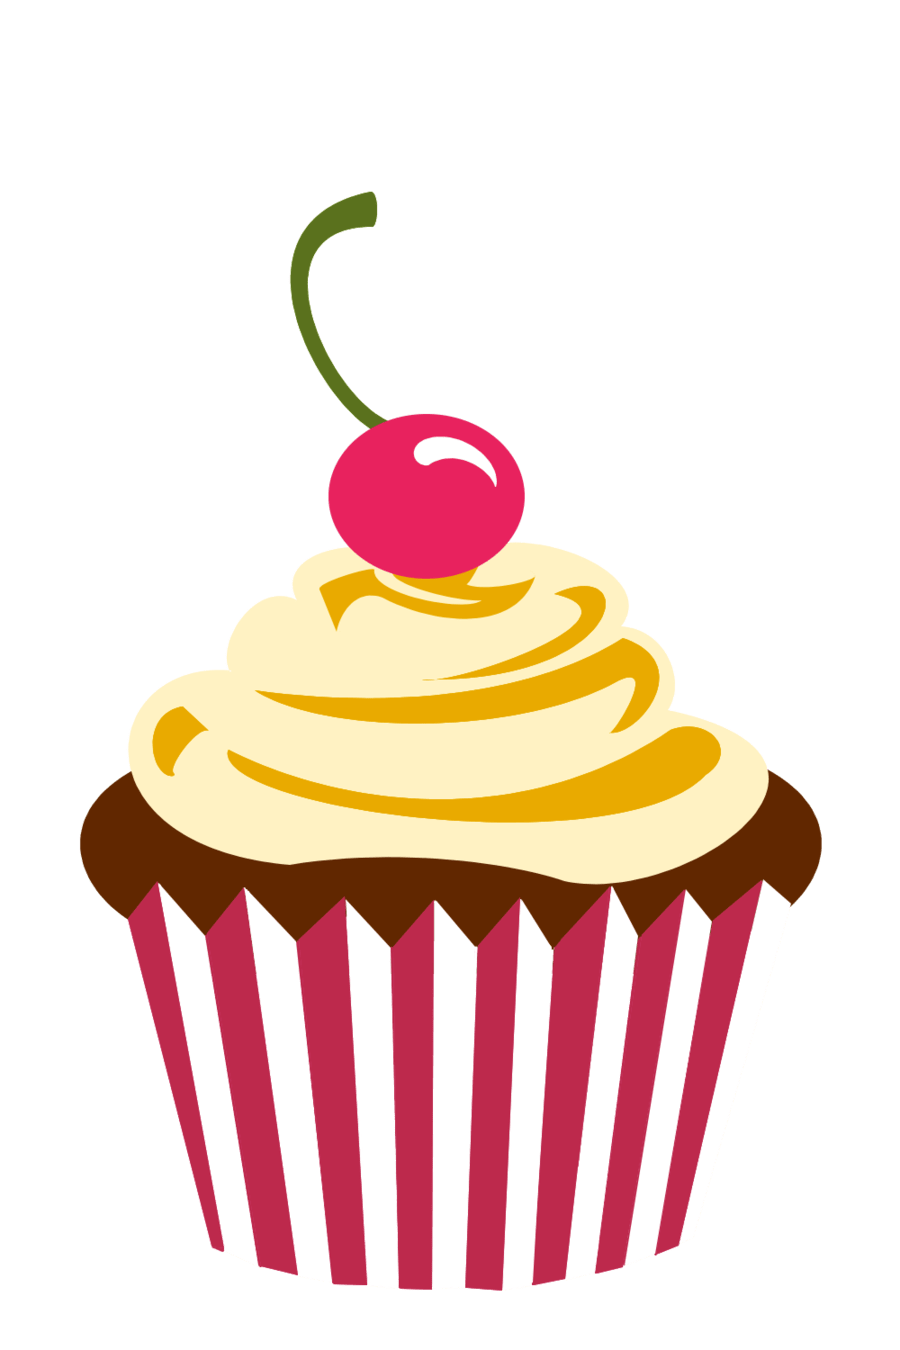 Cupcake Logo Png Cherry chocolate cupcake by Party